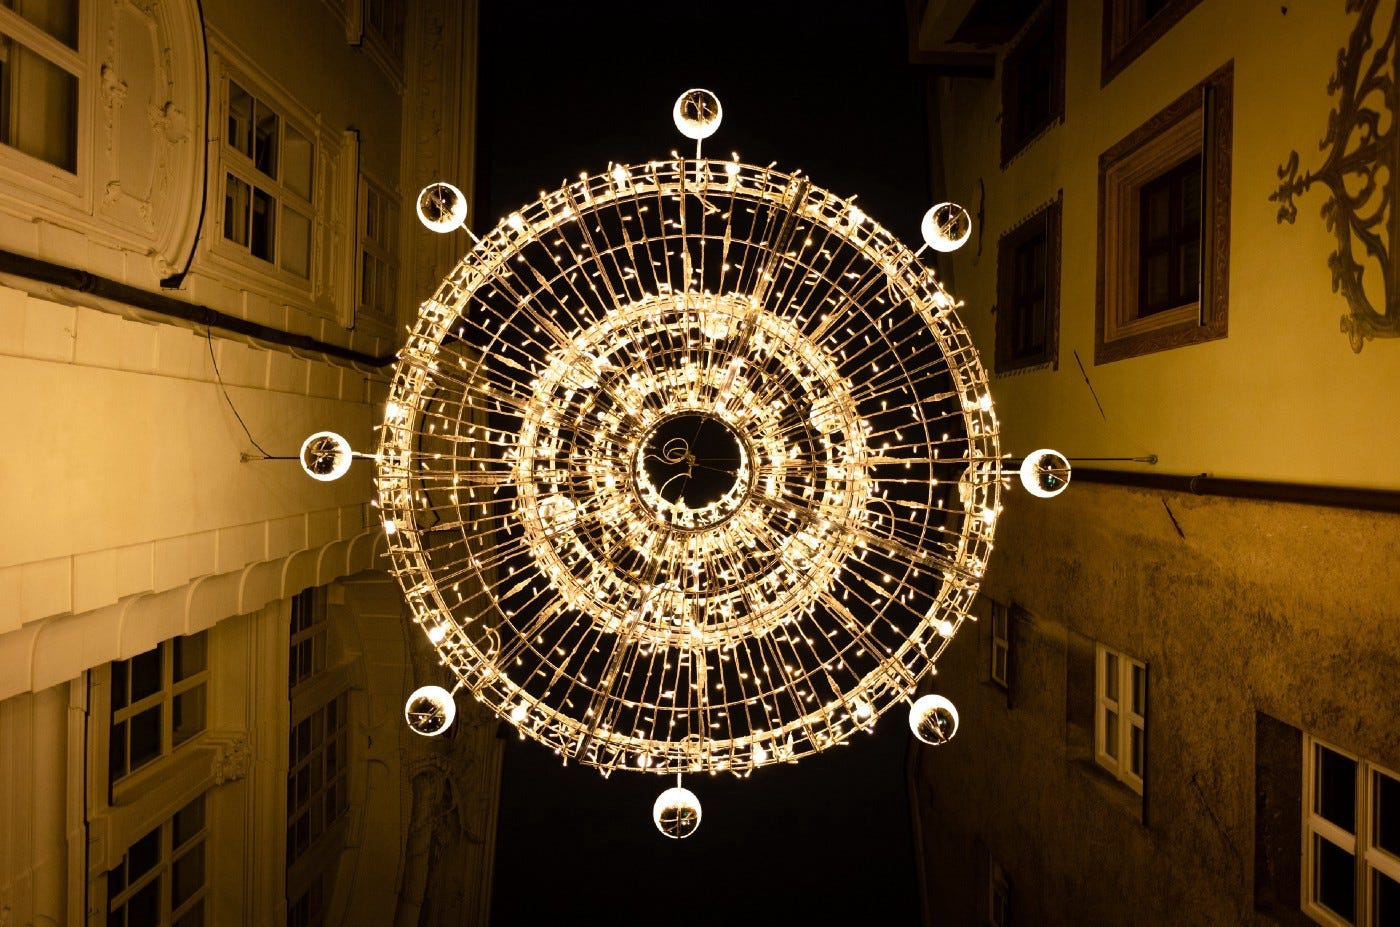 A chandelier photographed from directly below.